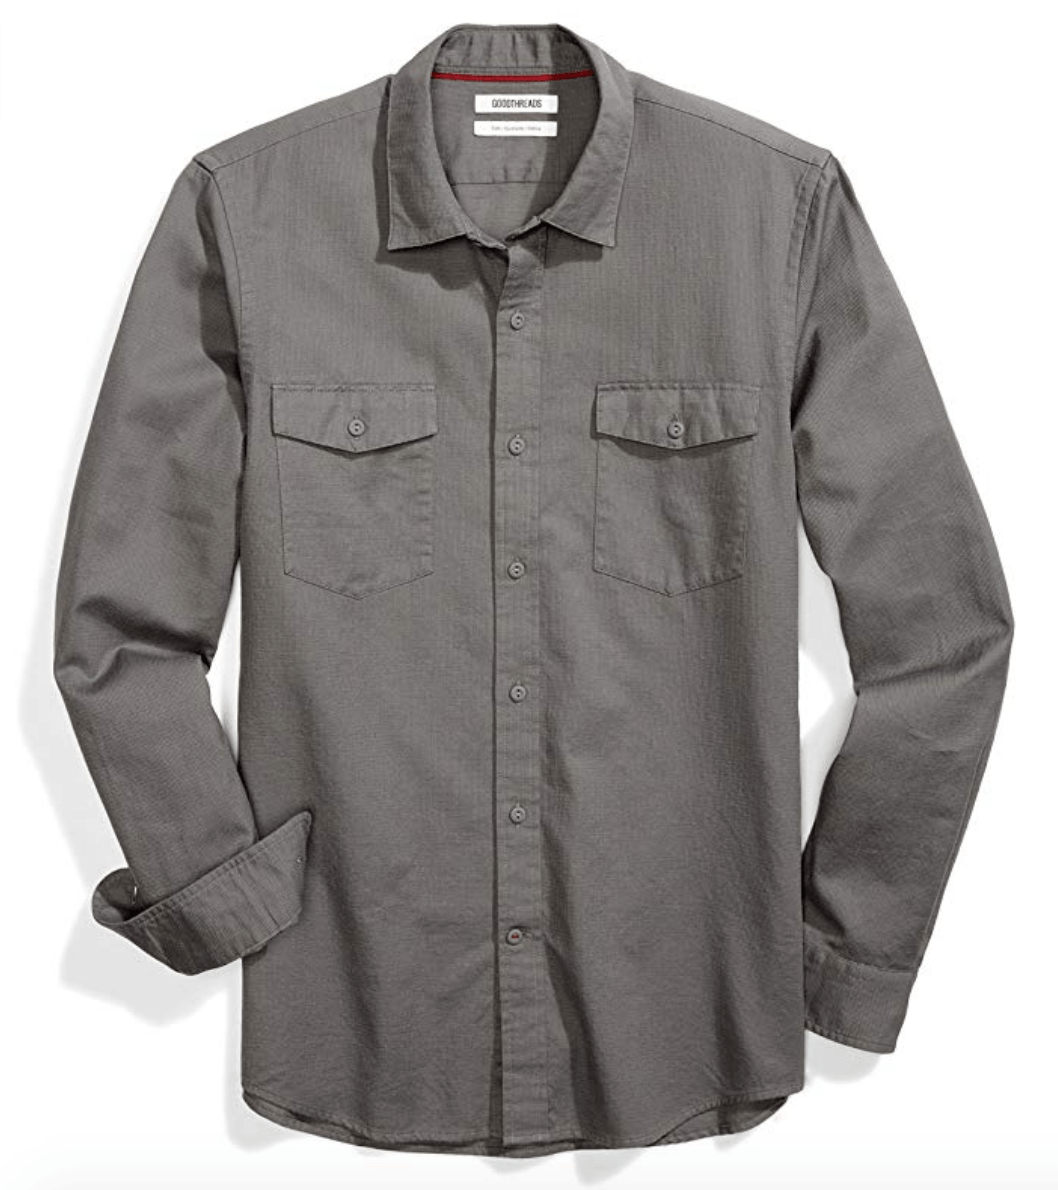 Goodthreads Men's Clothes gifts for travelers